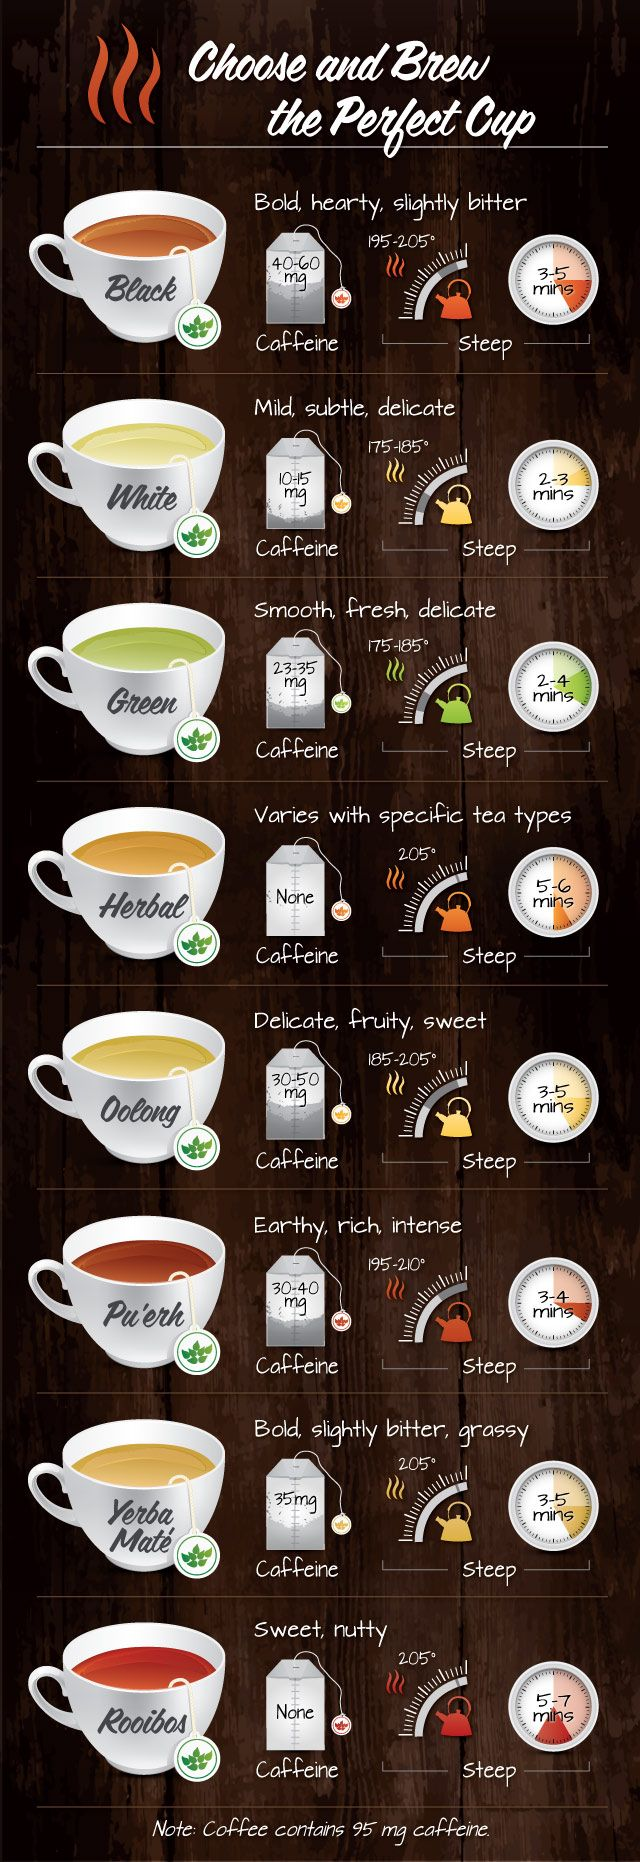 This is the best tea infographic I've seen, maybe someone can get some use out of it